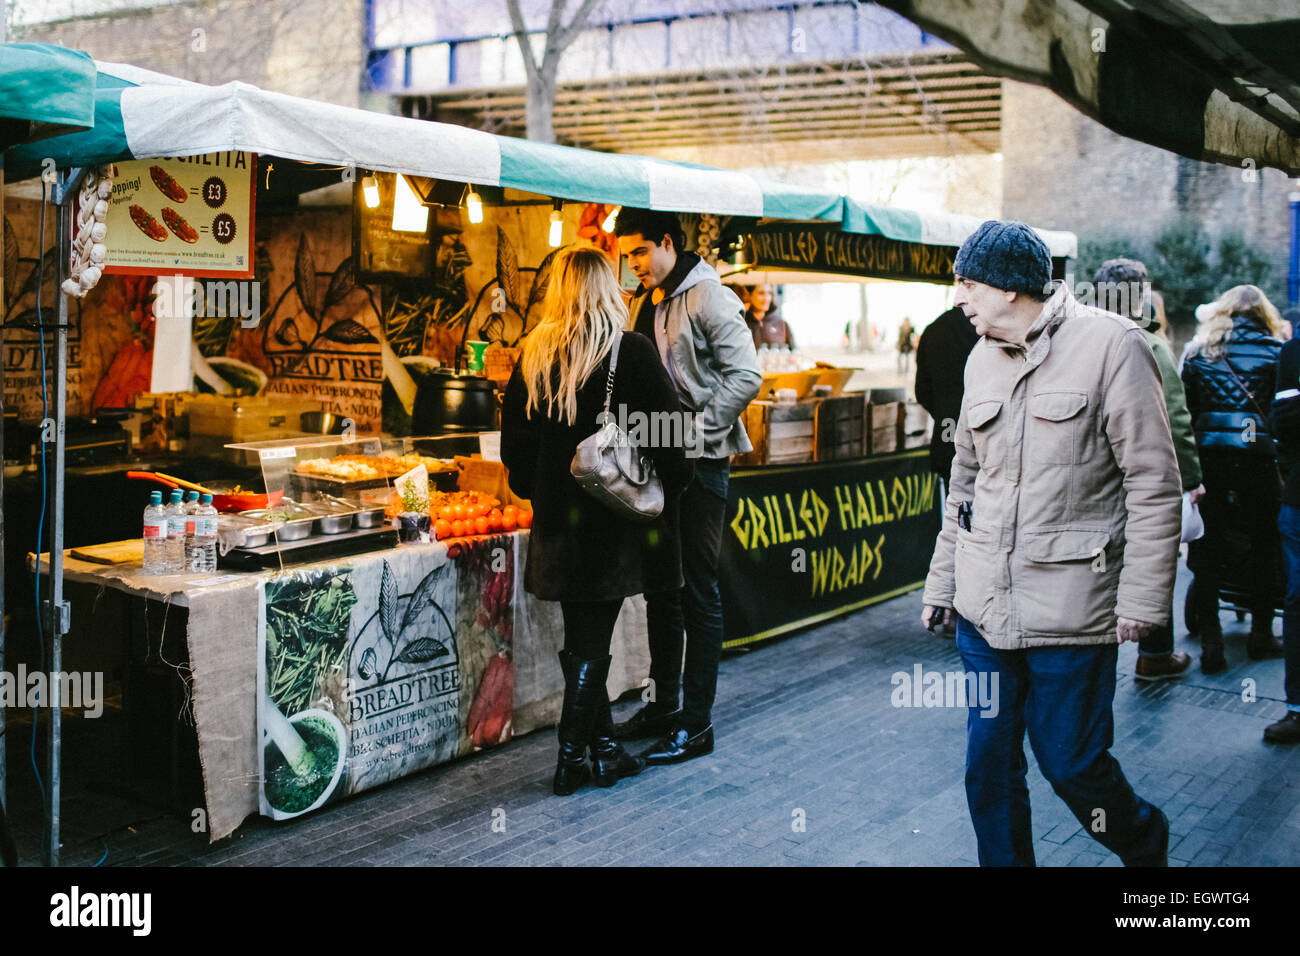 The Real Food street food market at the Southbank Centre in London. - Stock Image